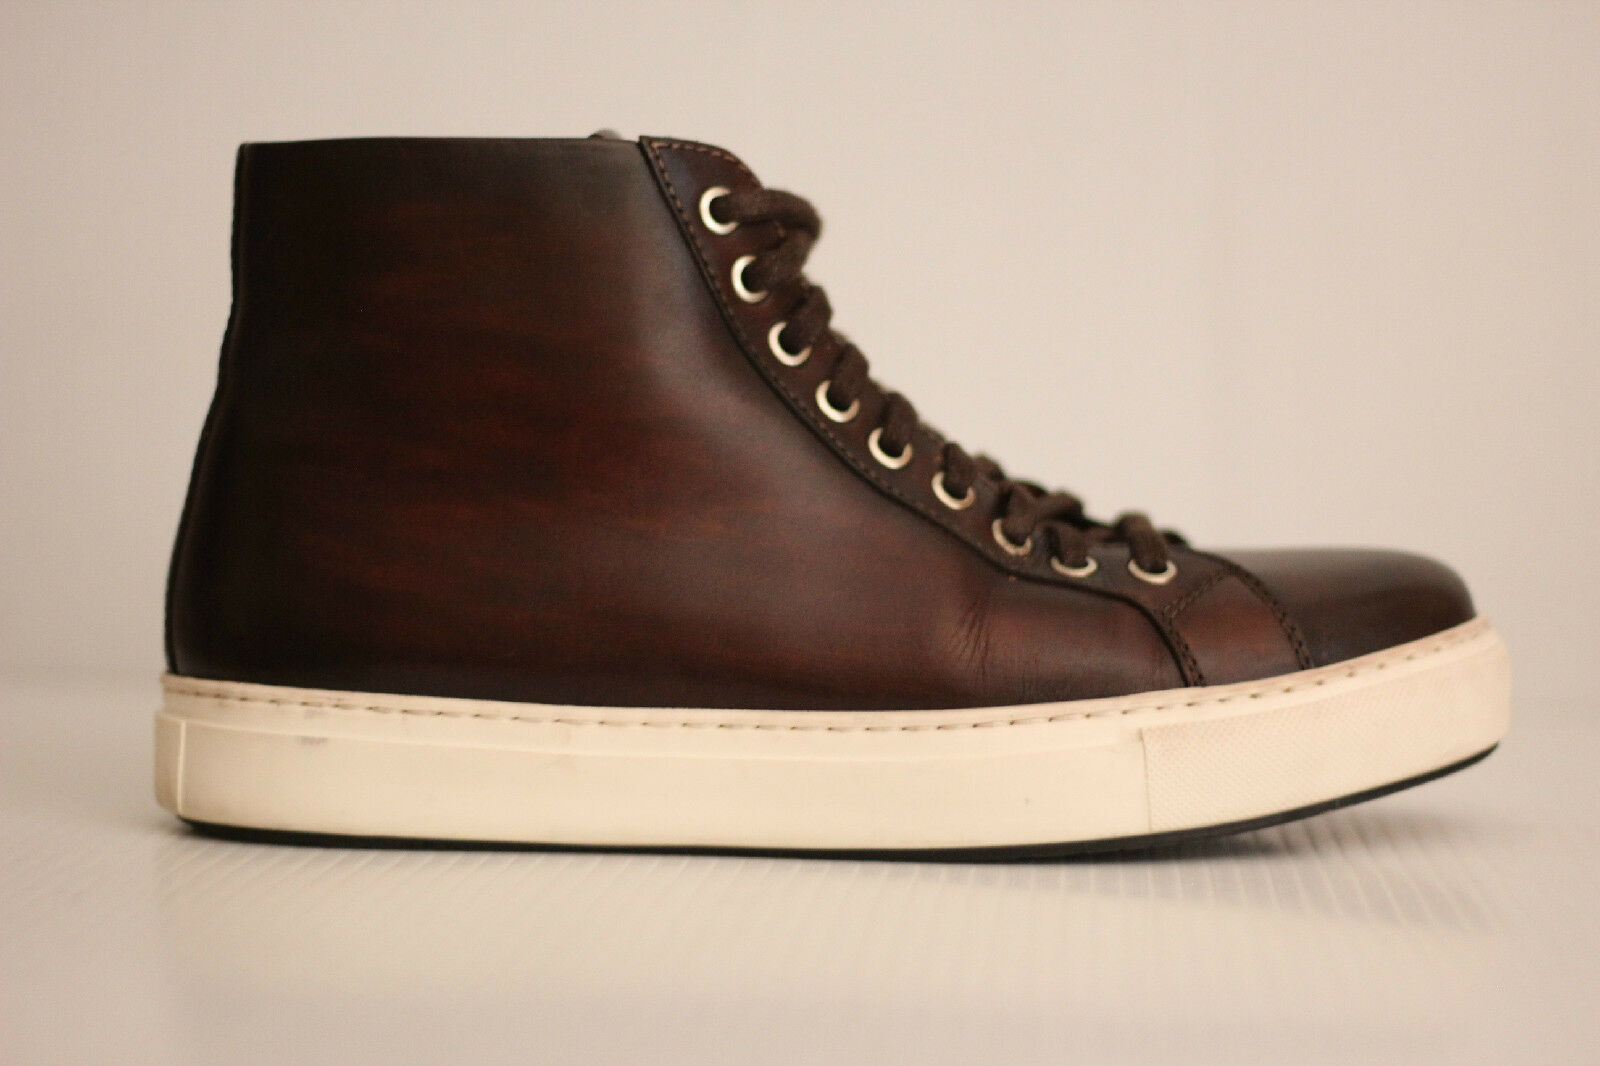 Magnanni 'Brando' High High High Top  Pelle Lace Up - Mid Brown - Size 7.5 (Q13) a4b3b4